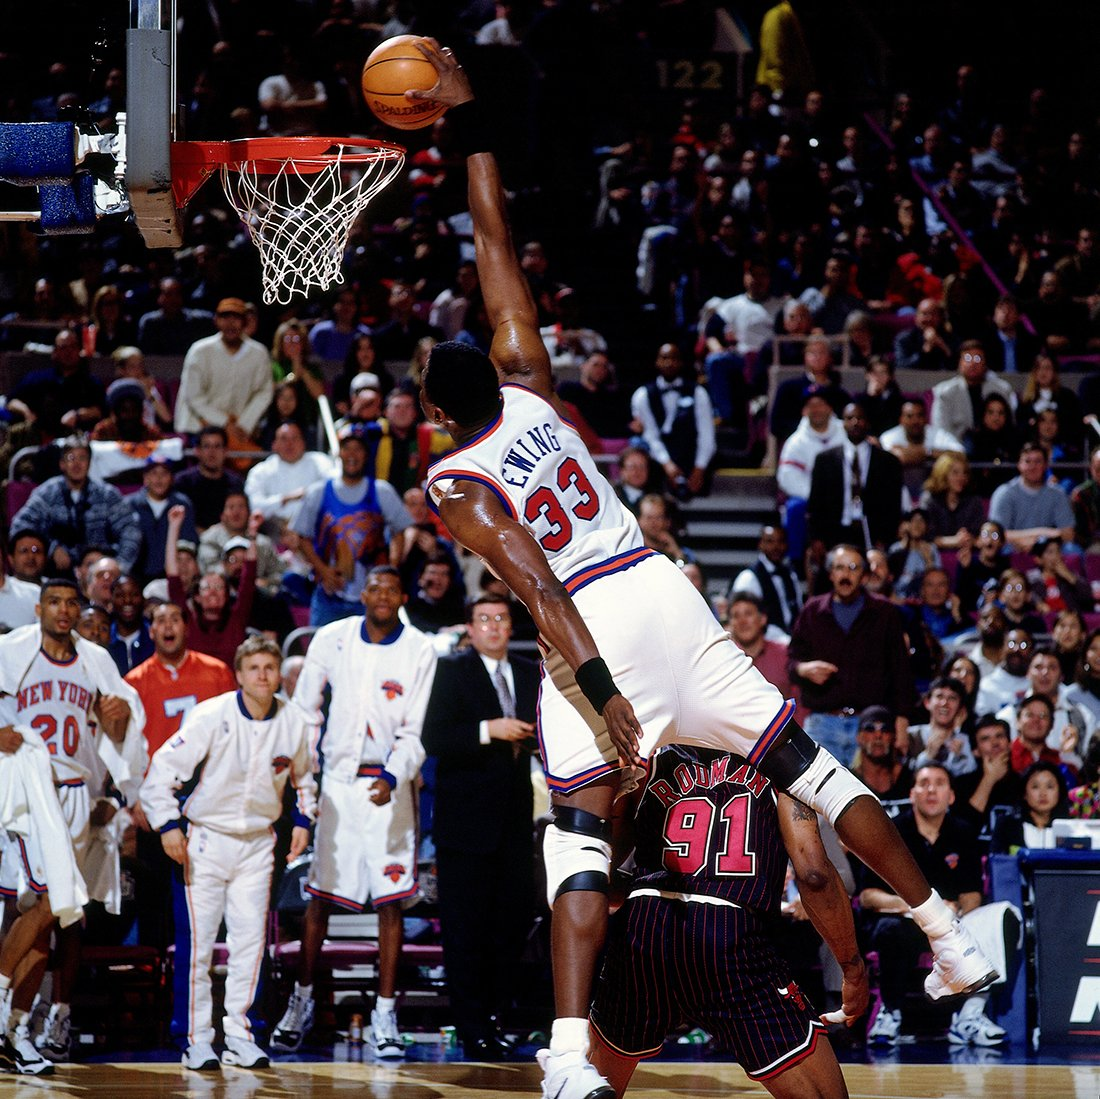 Copyright 1997 NBAE (Photo by Nathaniel S. Butler/NBAE via Getty Images)